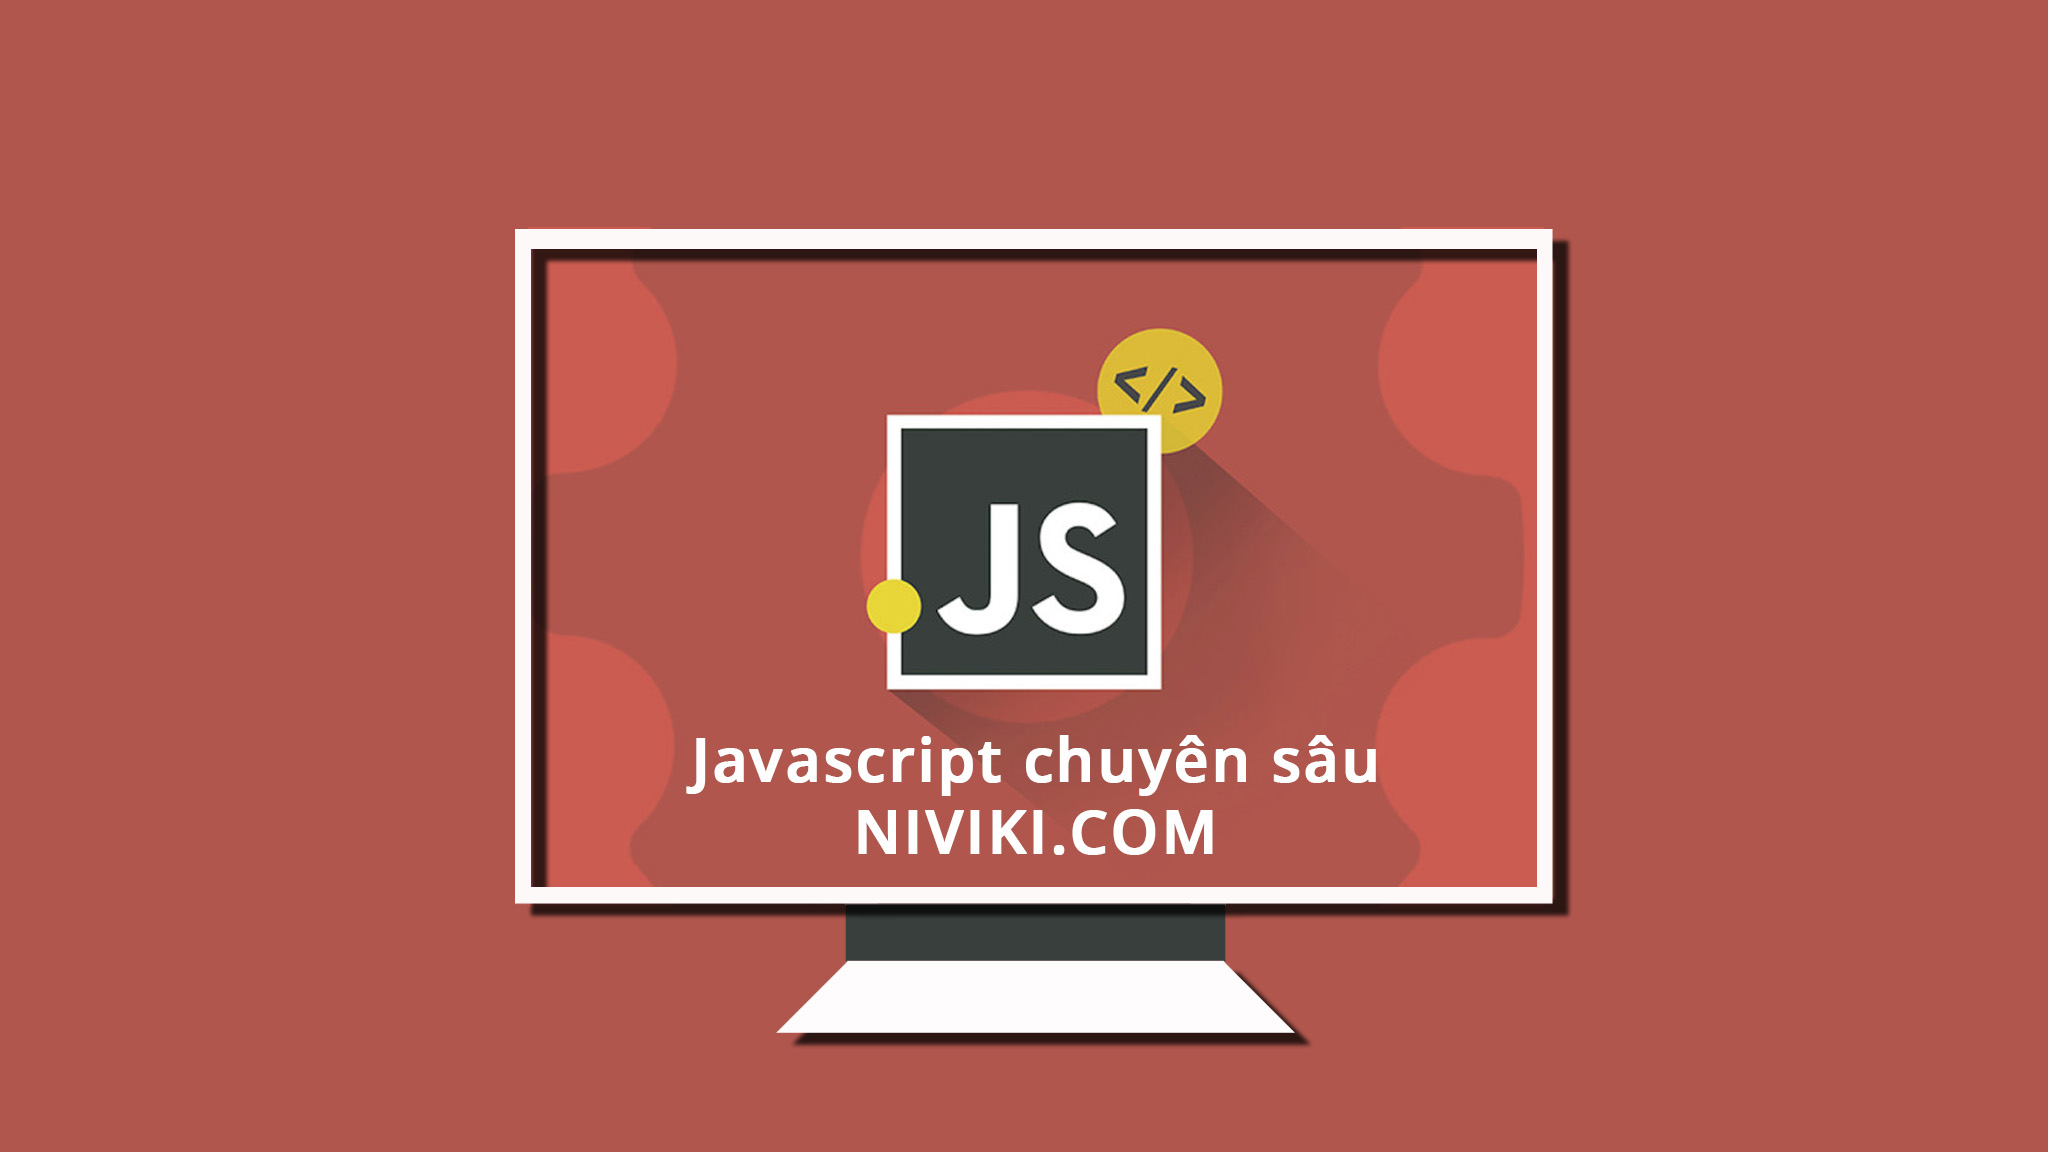 Học Javascript 1: Syntax Parser, Execution Context, Lexical Environment là gì